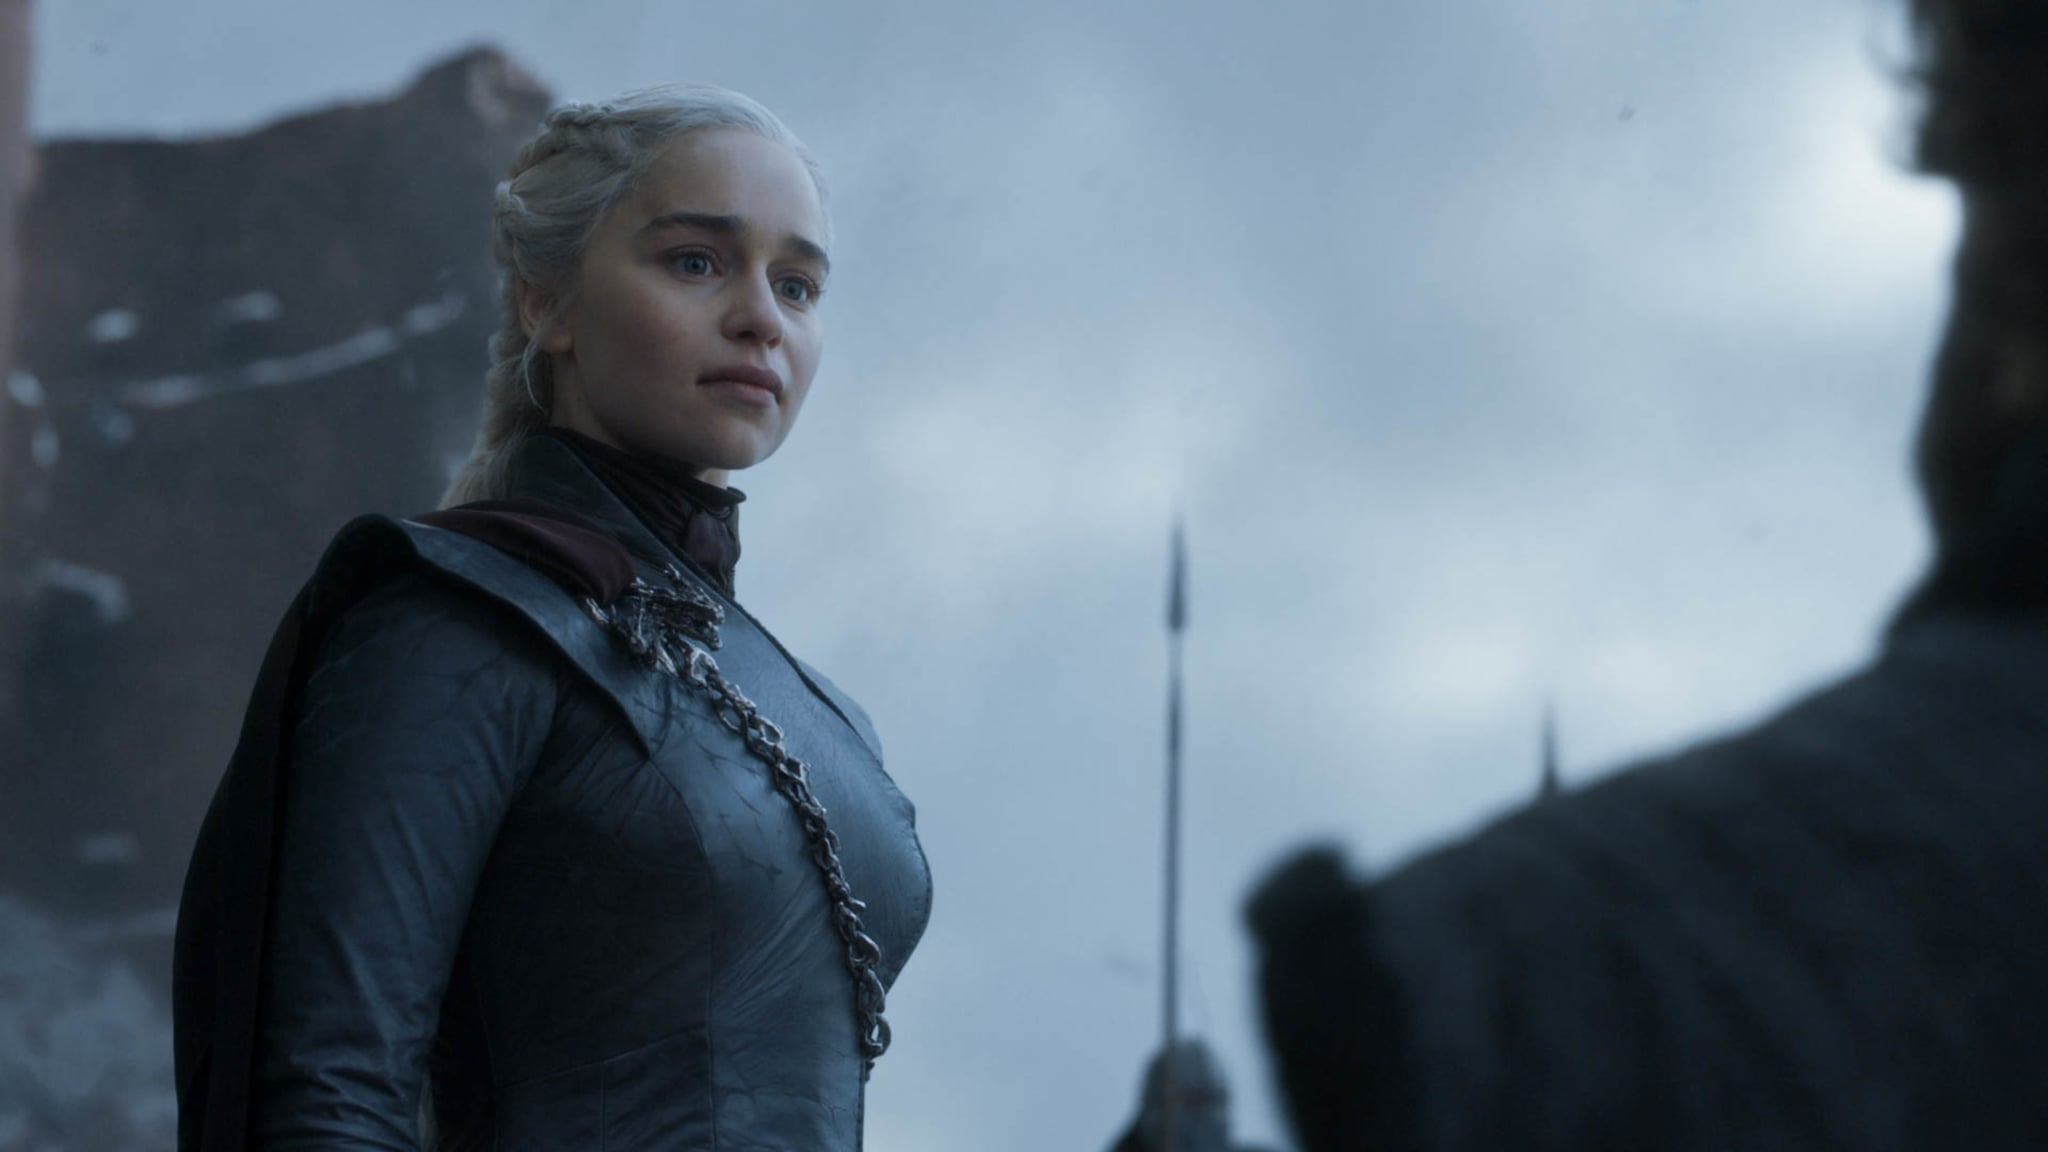 We're Just Going to Say It: Daenerys Targaryen Deserved a Better Ending on Game of Thrones